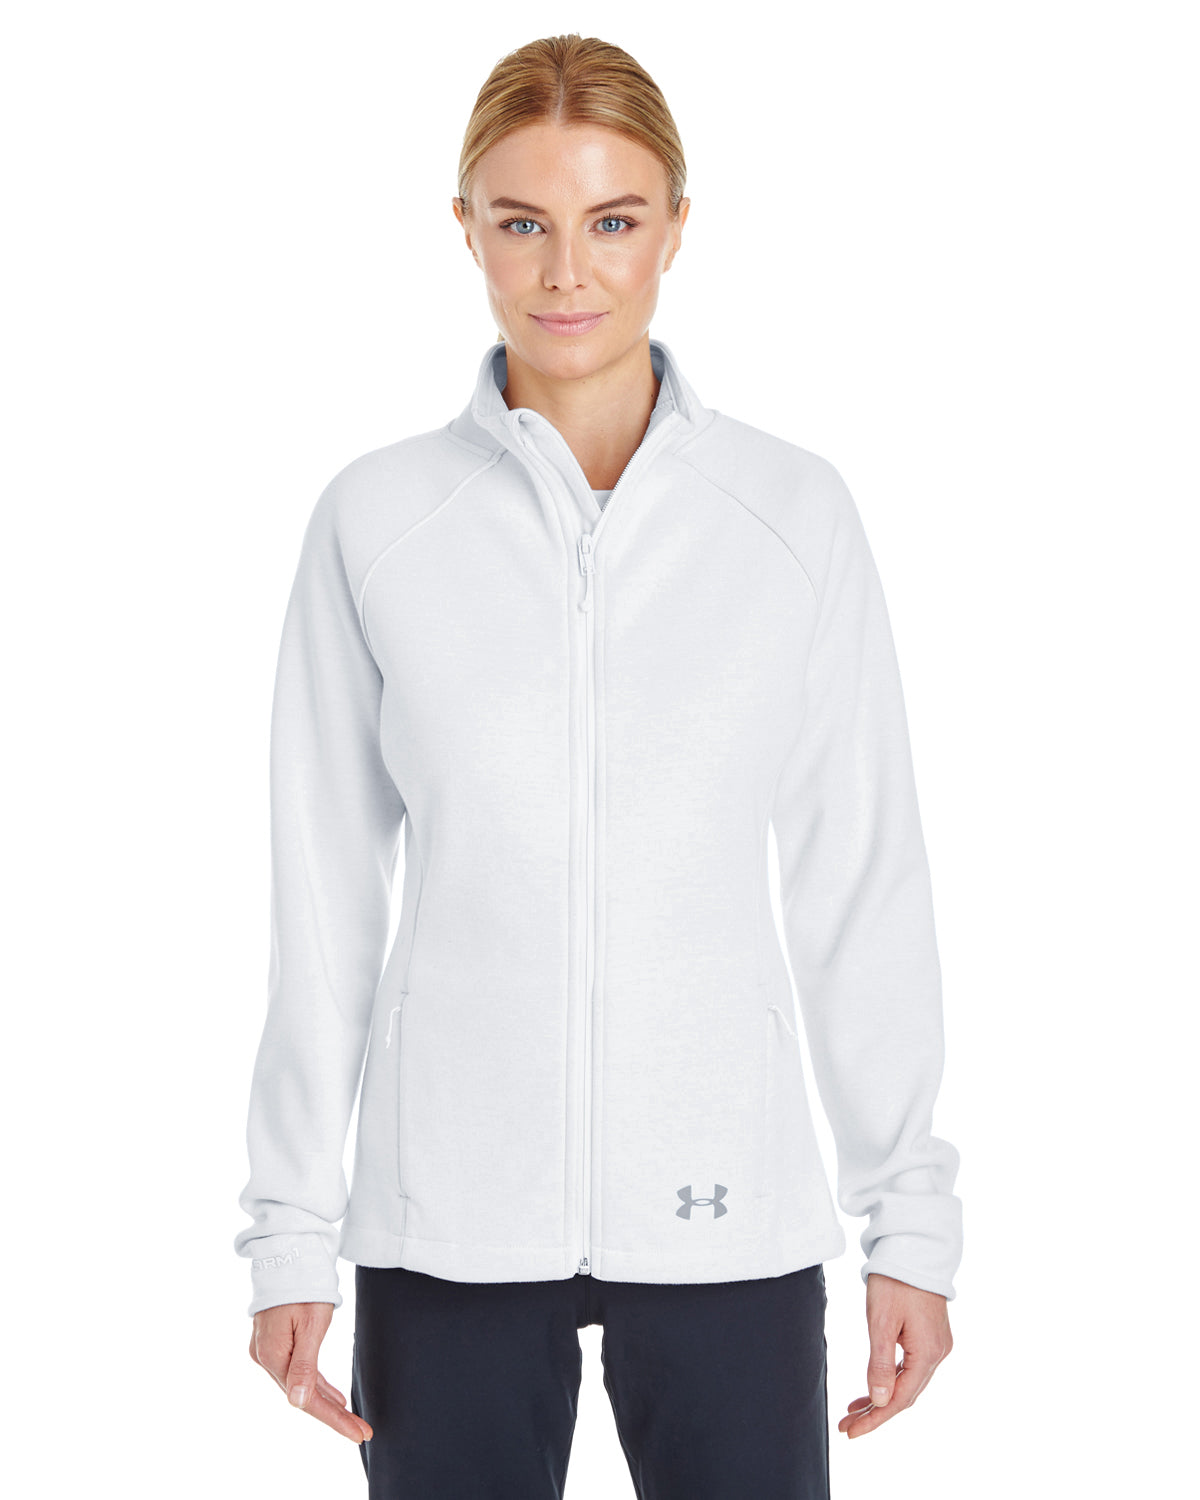 UNDER ARMOUR LADIES' UA GRANITE JACKET